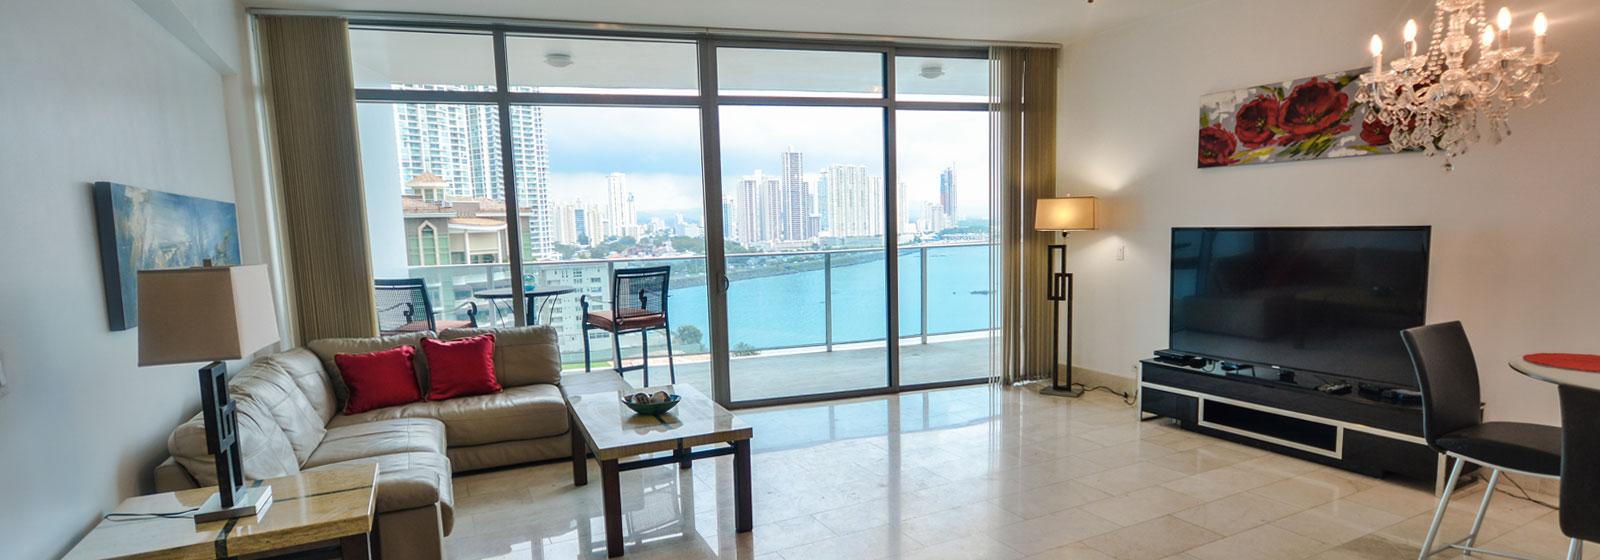 Attention Buyers: 6% Return on Rented, High-Floor 1-Bedroom at Grand Tower, Punta Pacifica